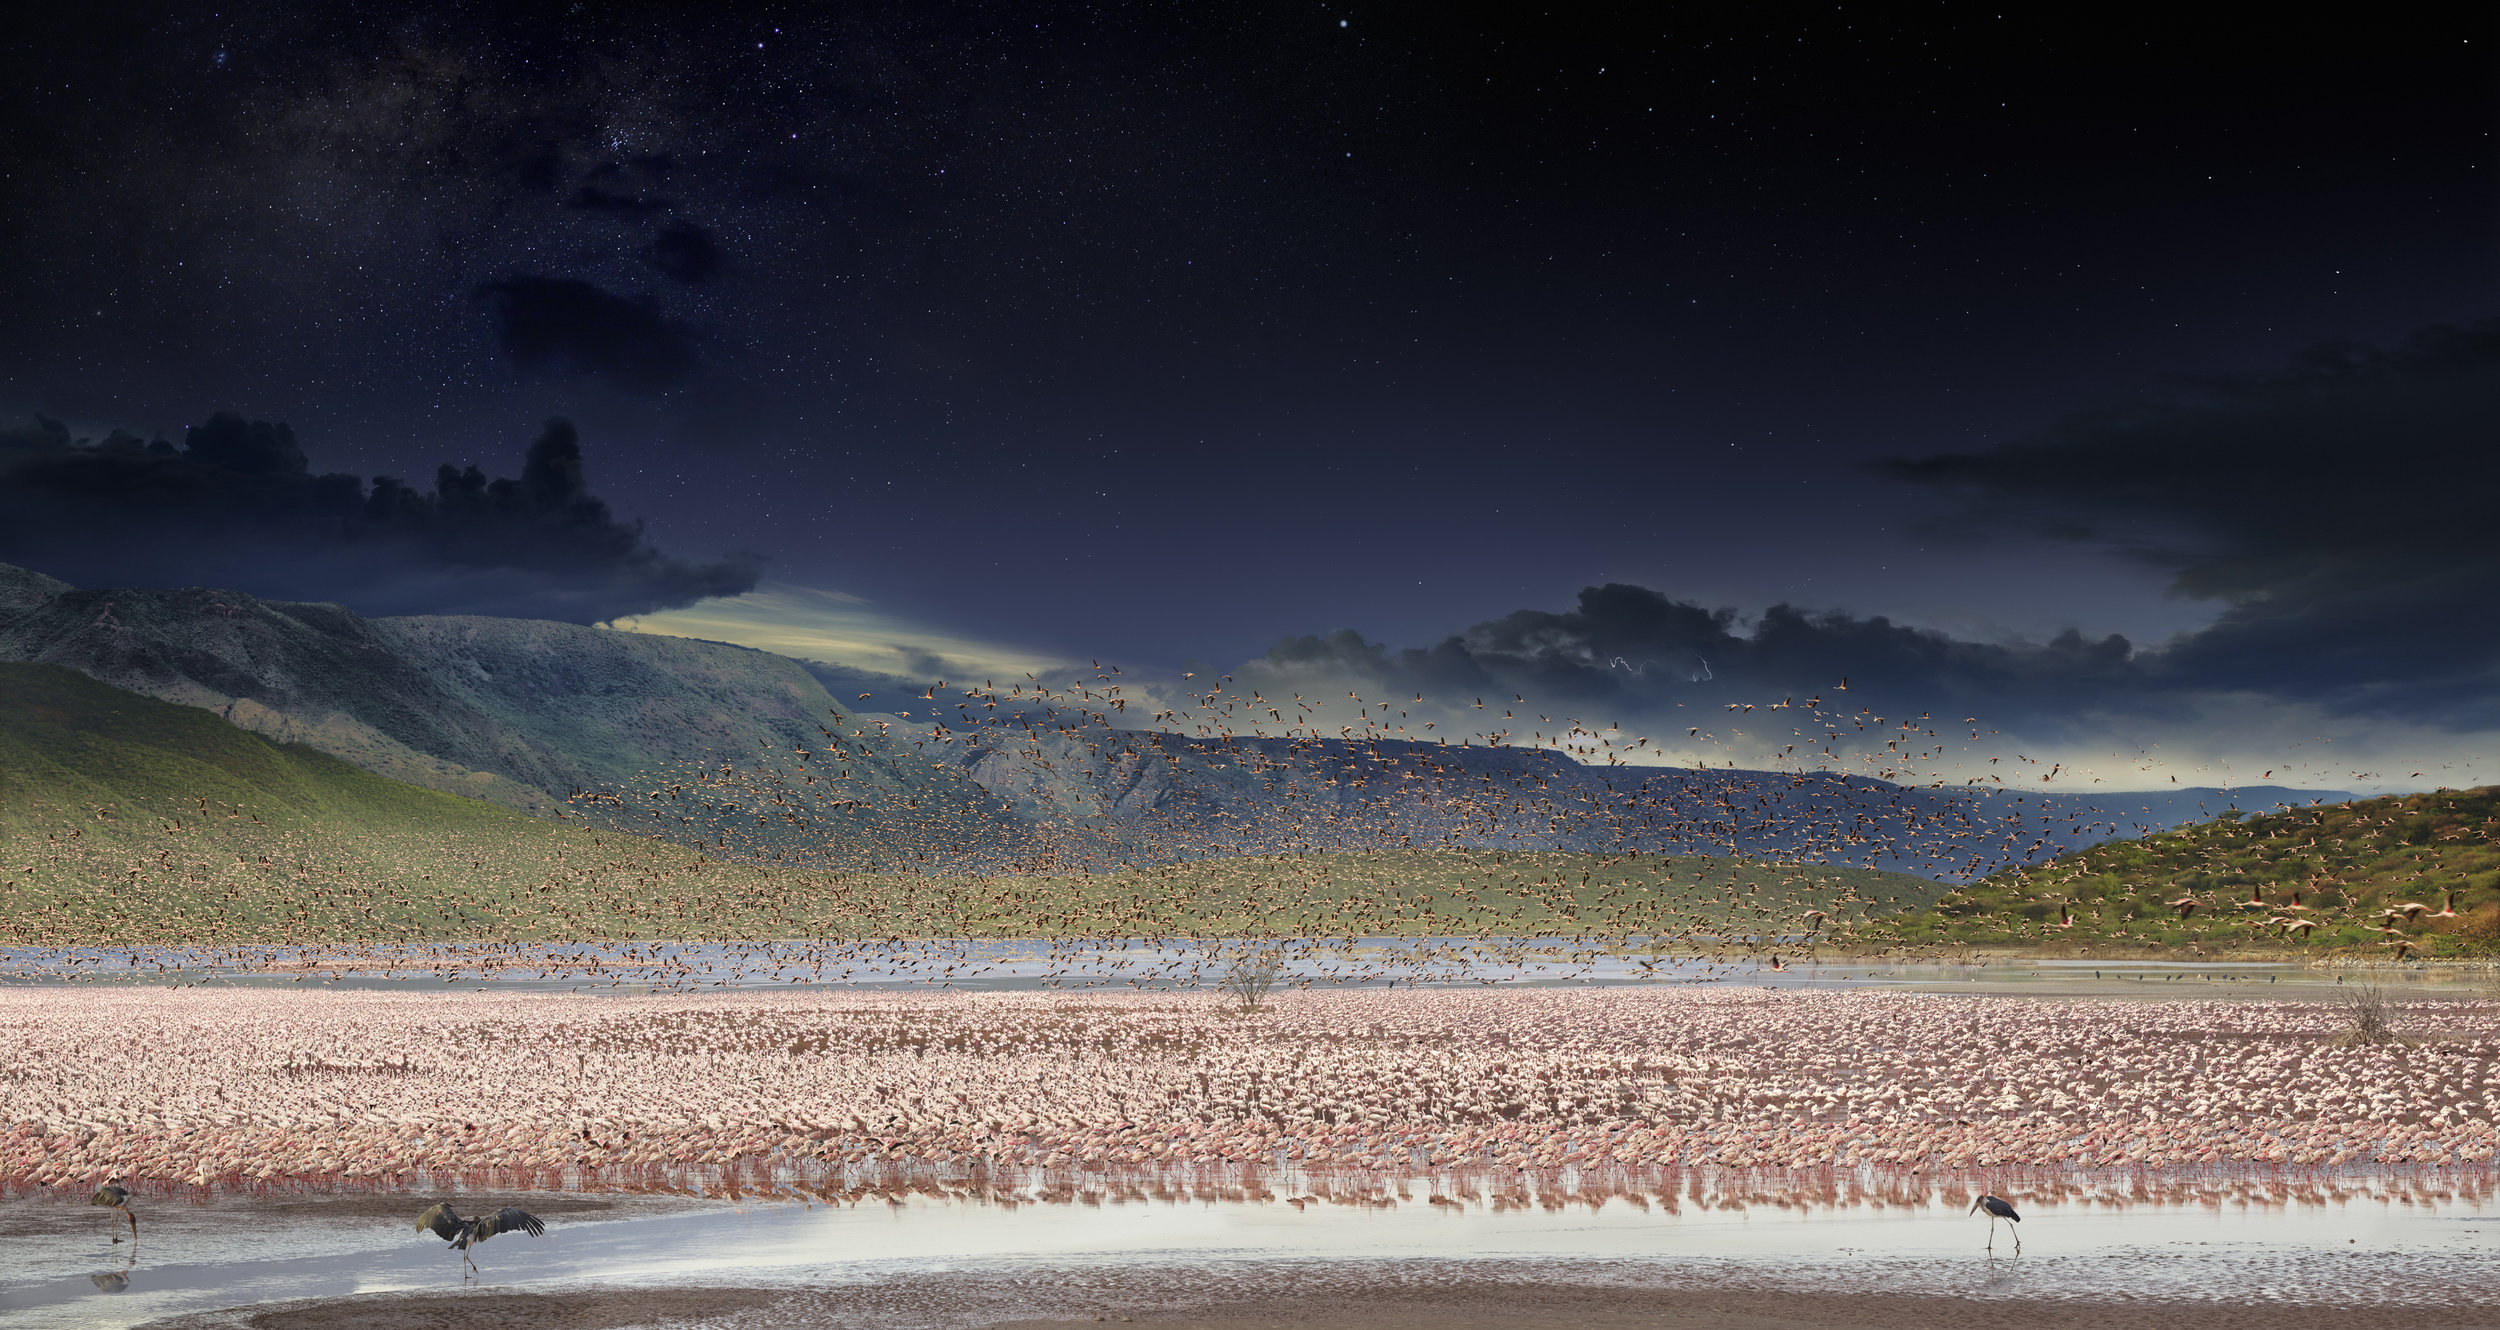 Lesser Flamingos, Lake Bogoria, Kenya, Africa, Day to Night™, 2017